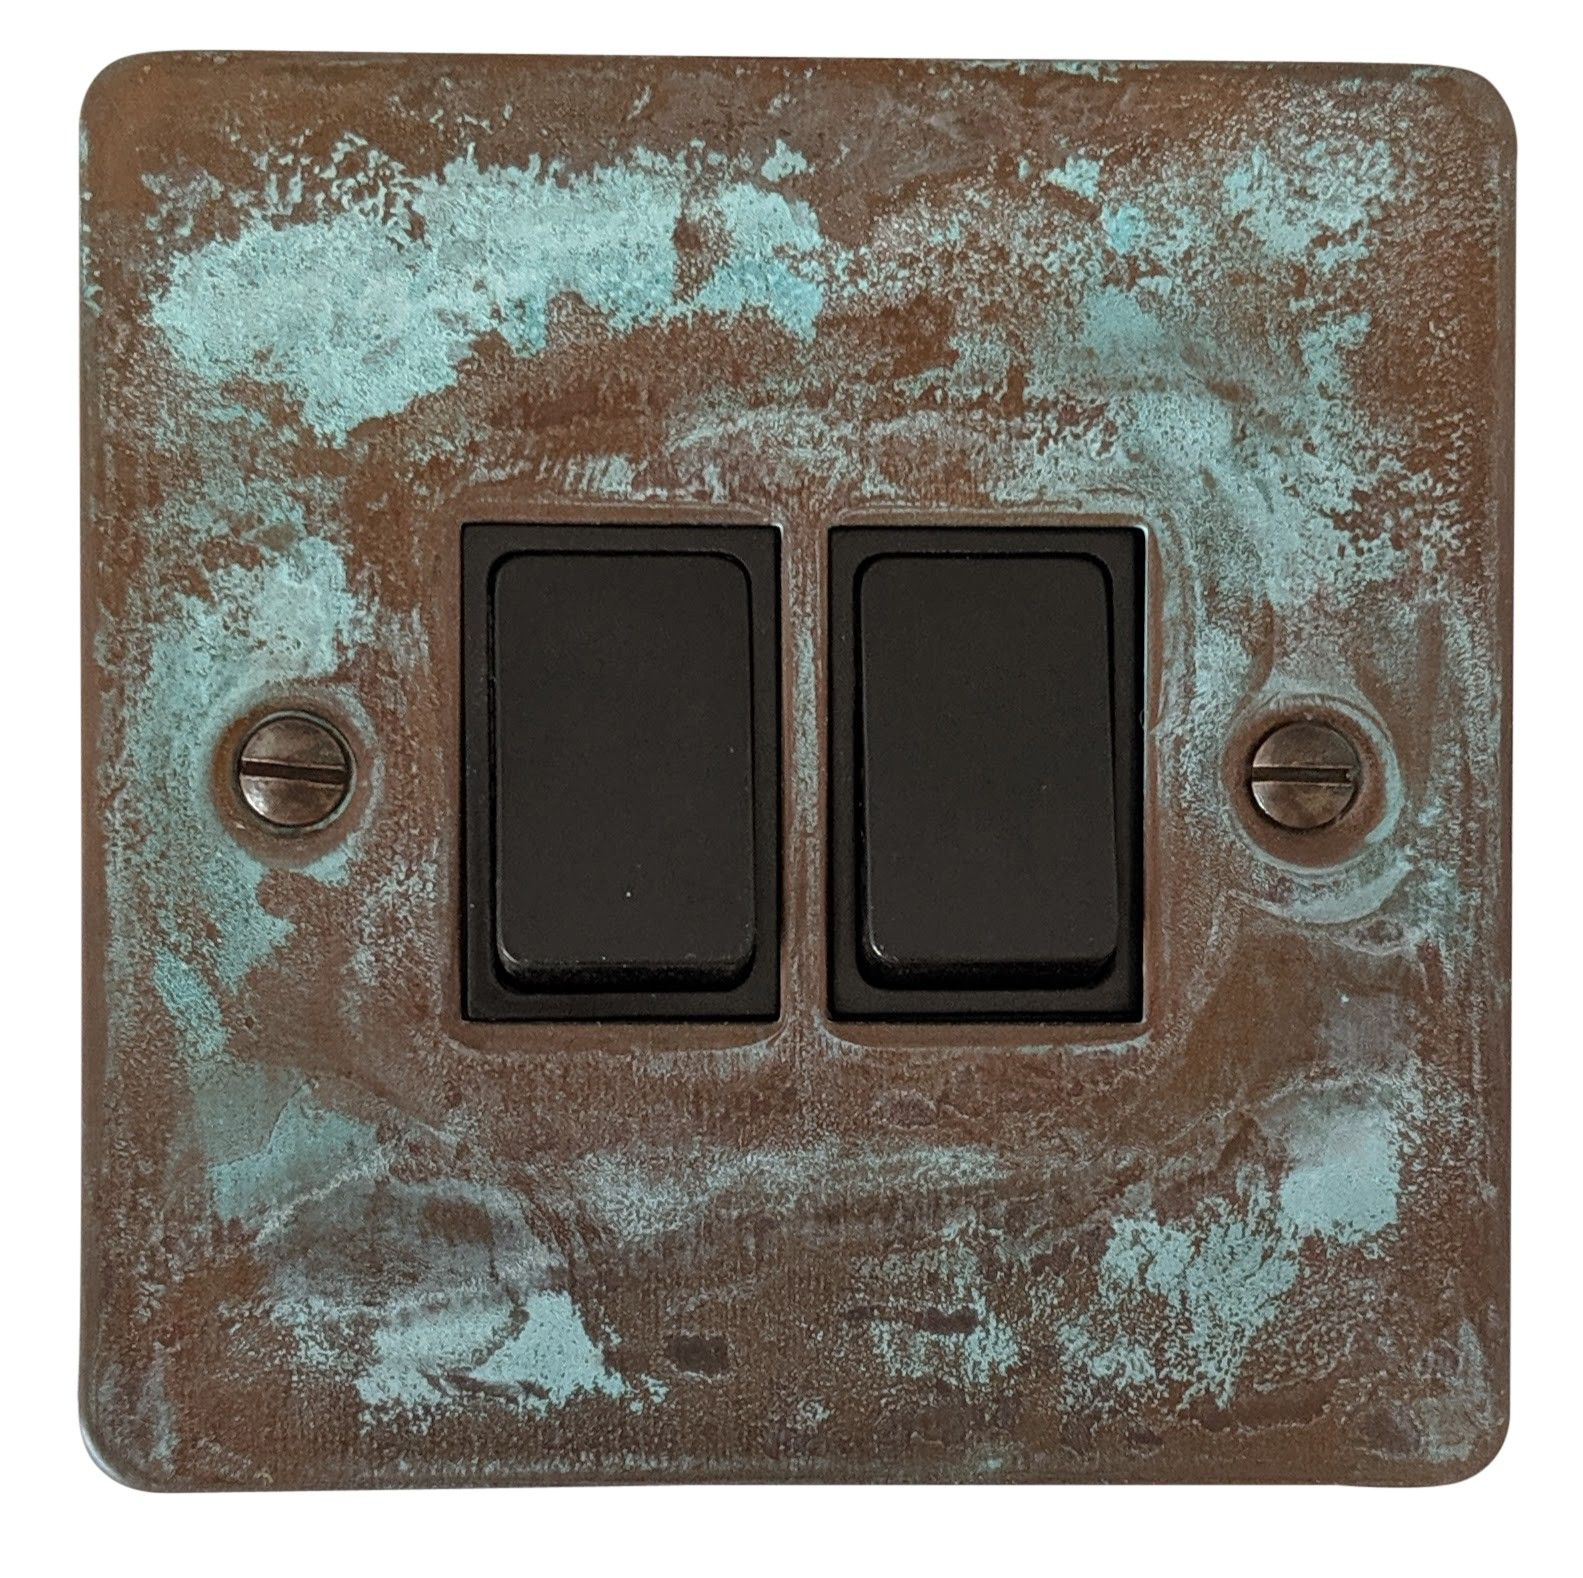 G&H FV2B Flat Plate Verdigris 2 Gang 1 or 2 Way Rocker Light Switch